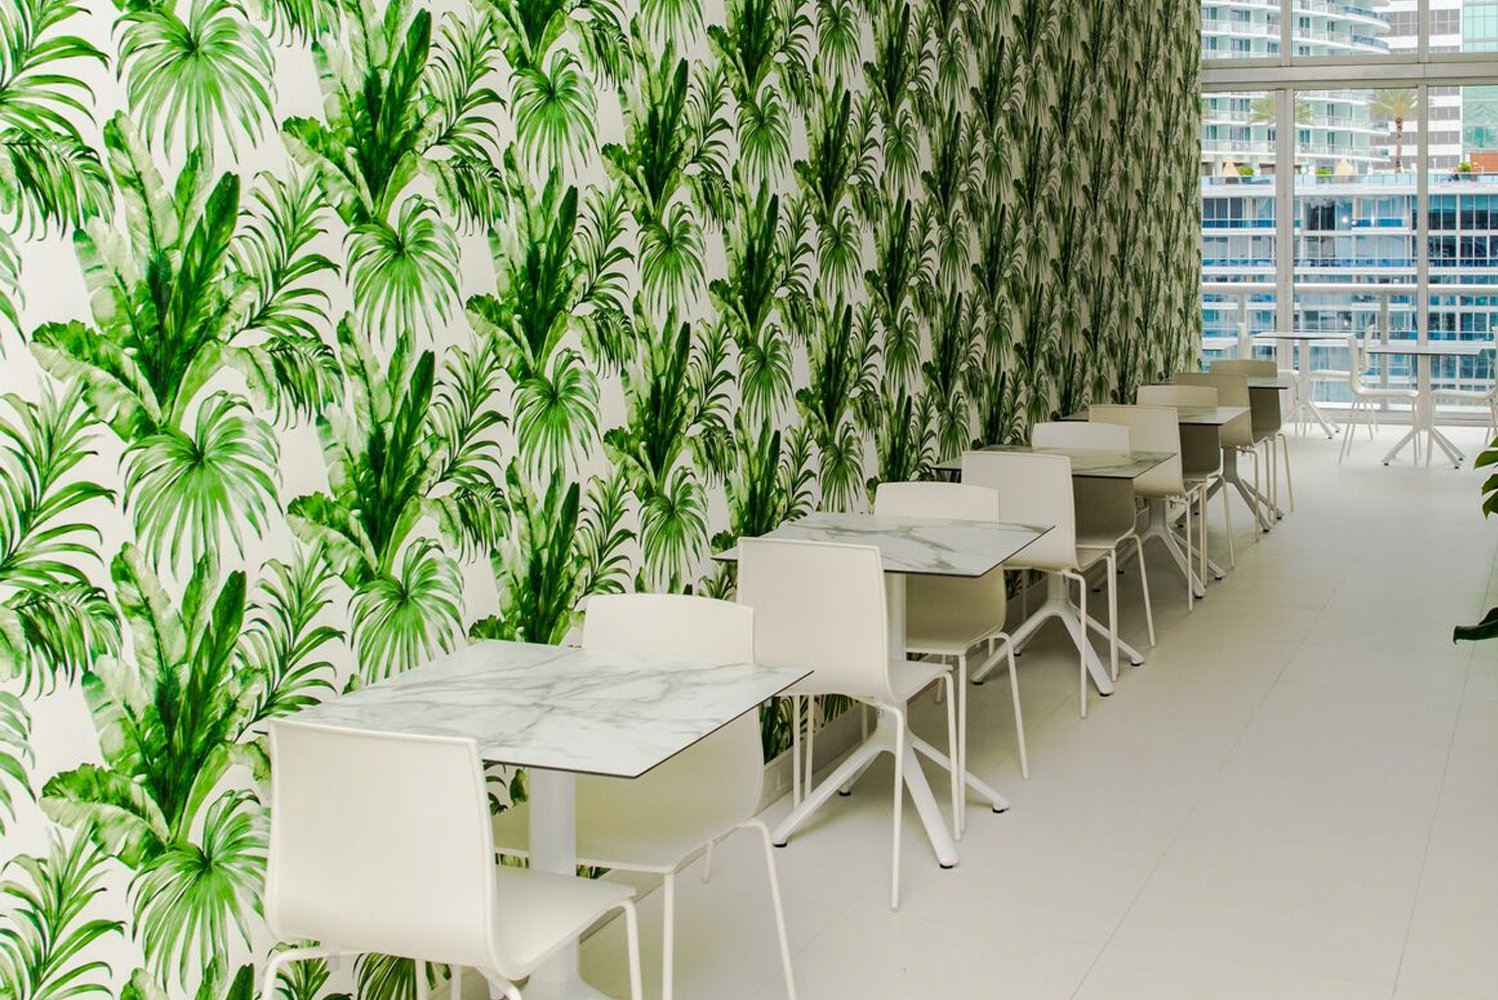 Marthica Galvis, director of marketing for W Miami who spearheaded the endeavor, sought to build a space that was bright and welcoming with an emphasis on natural greenery.